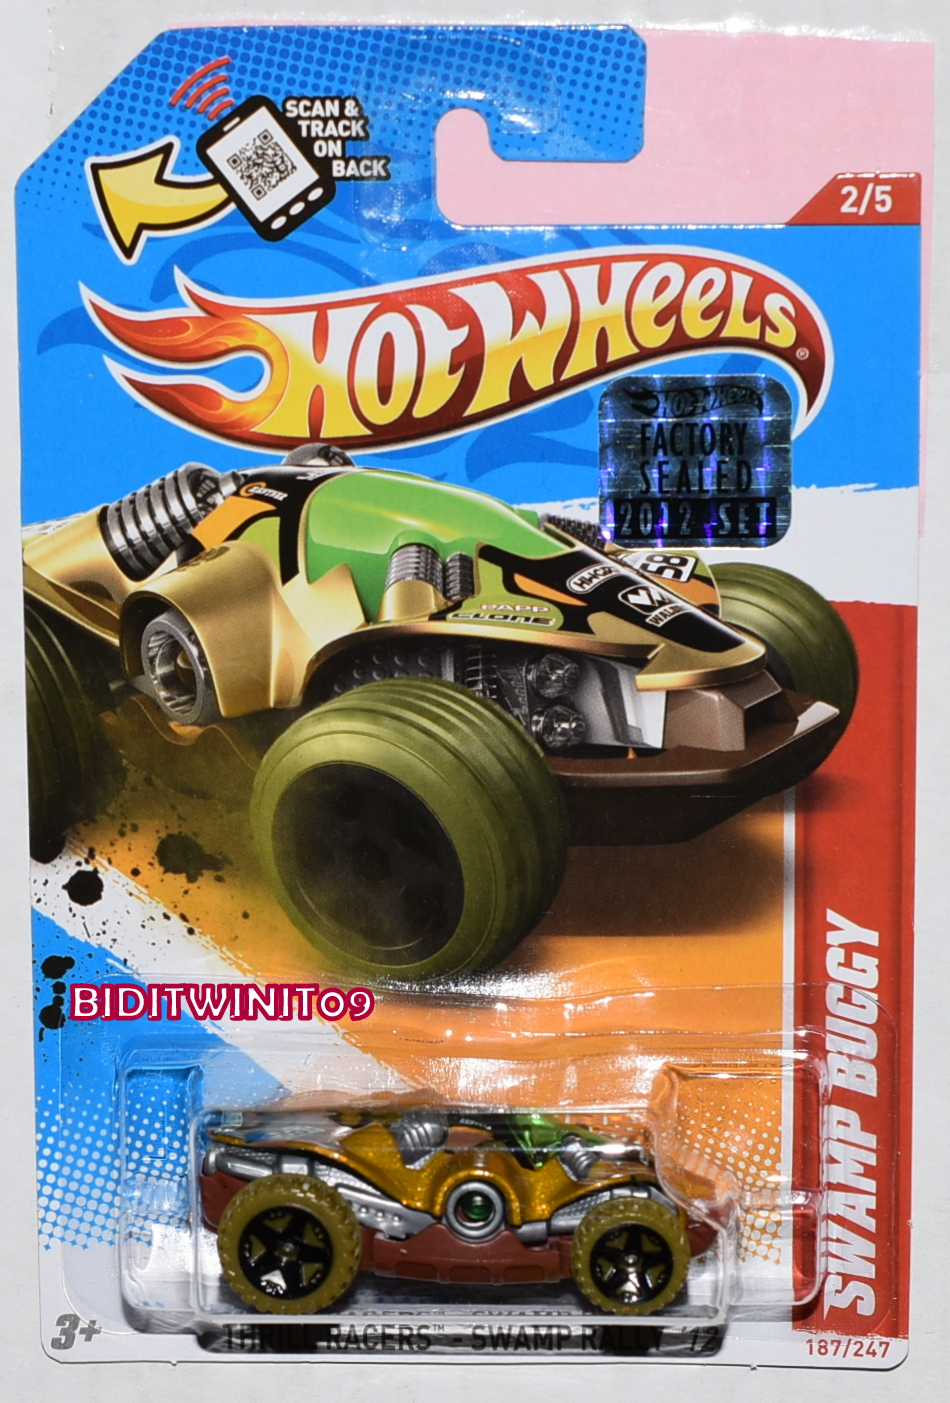 HOT WHEELS 2012 THRILL RACERS SWAMP BUGGY FACTORY SEALED